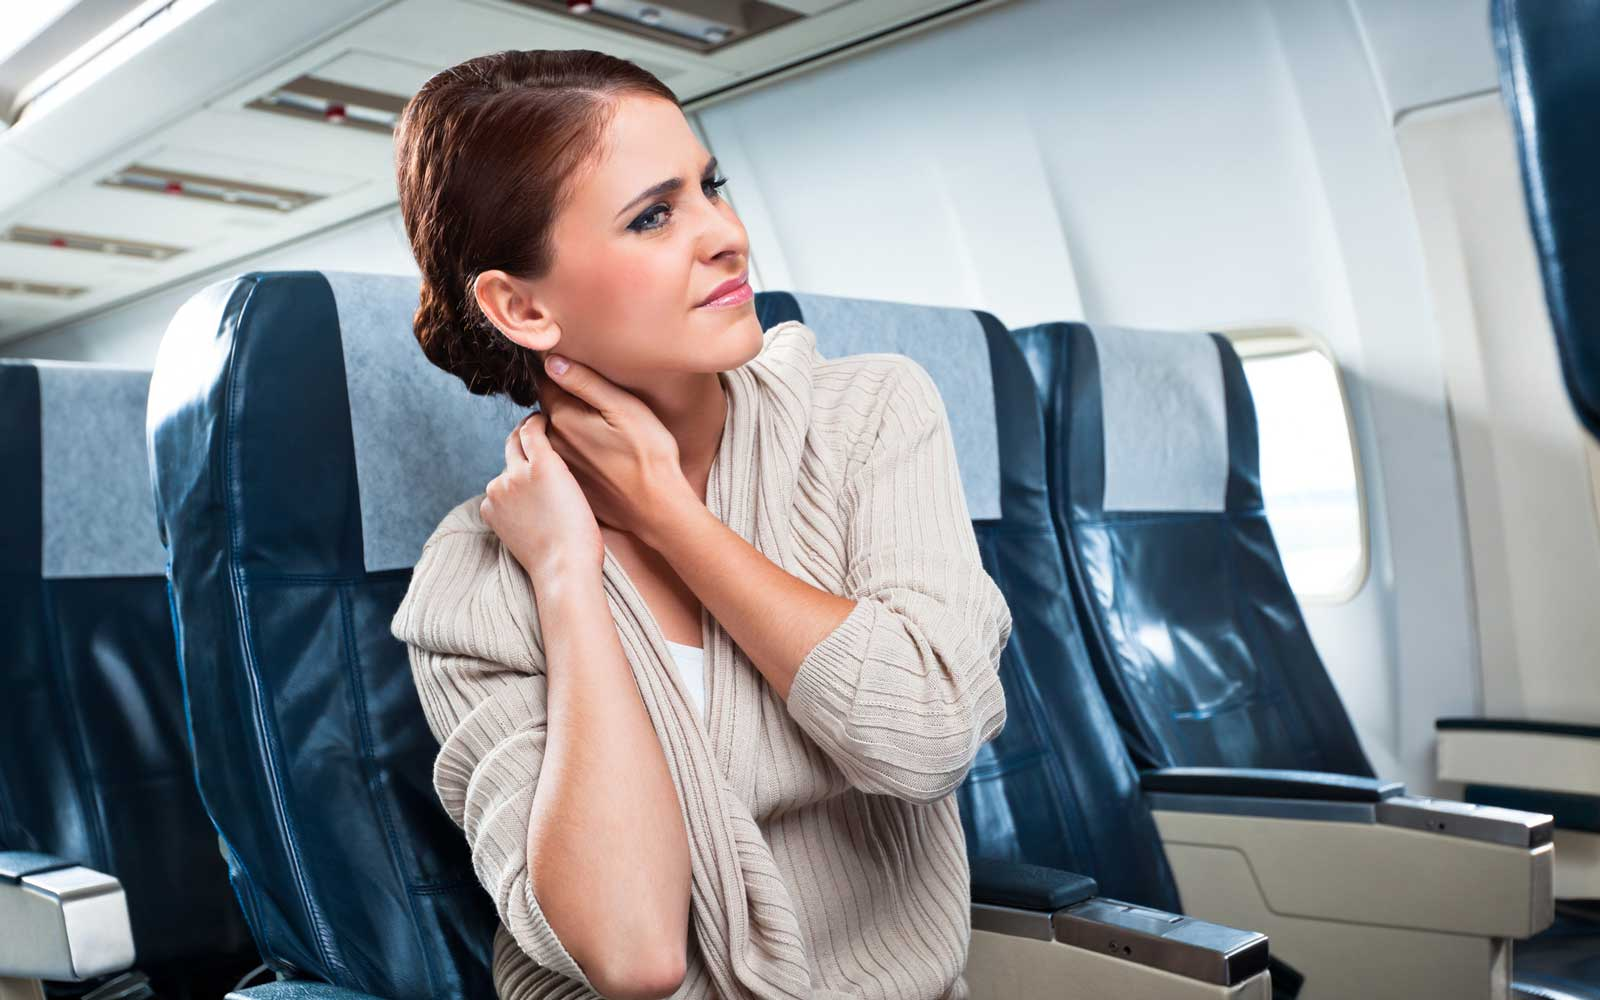 5 Common Aches and Pains You Can Get While Flying – and What You Can Do About It